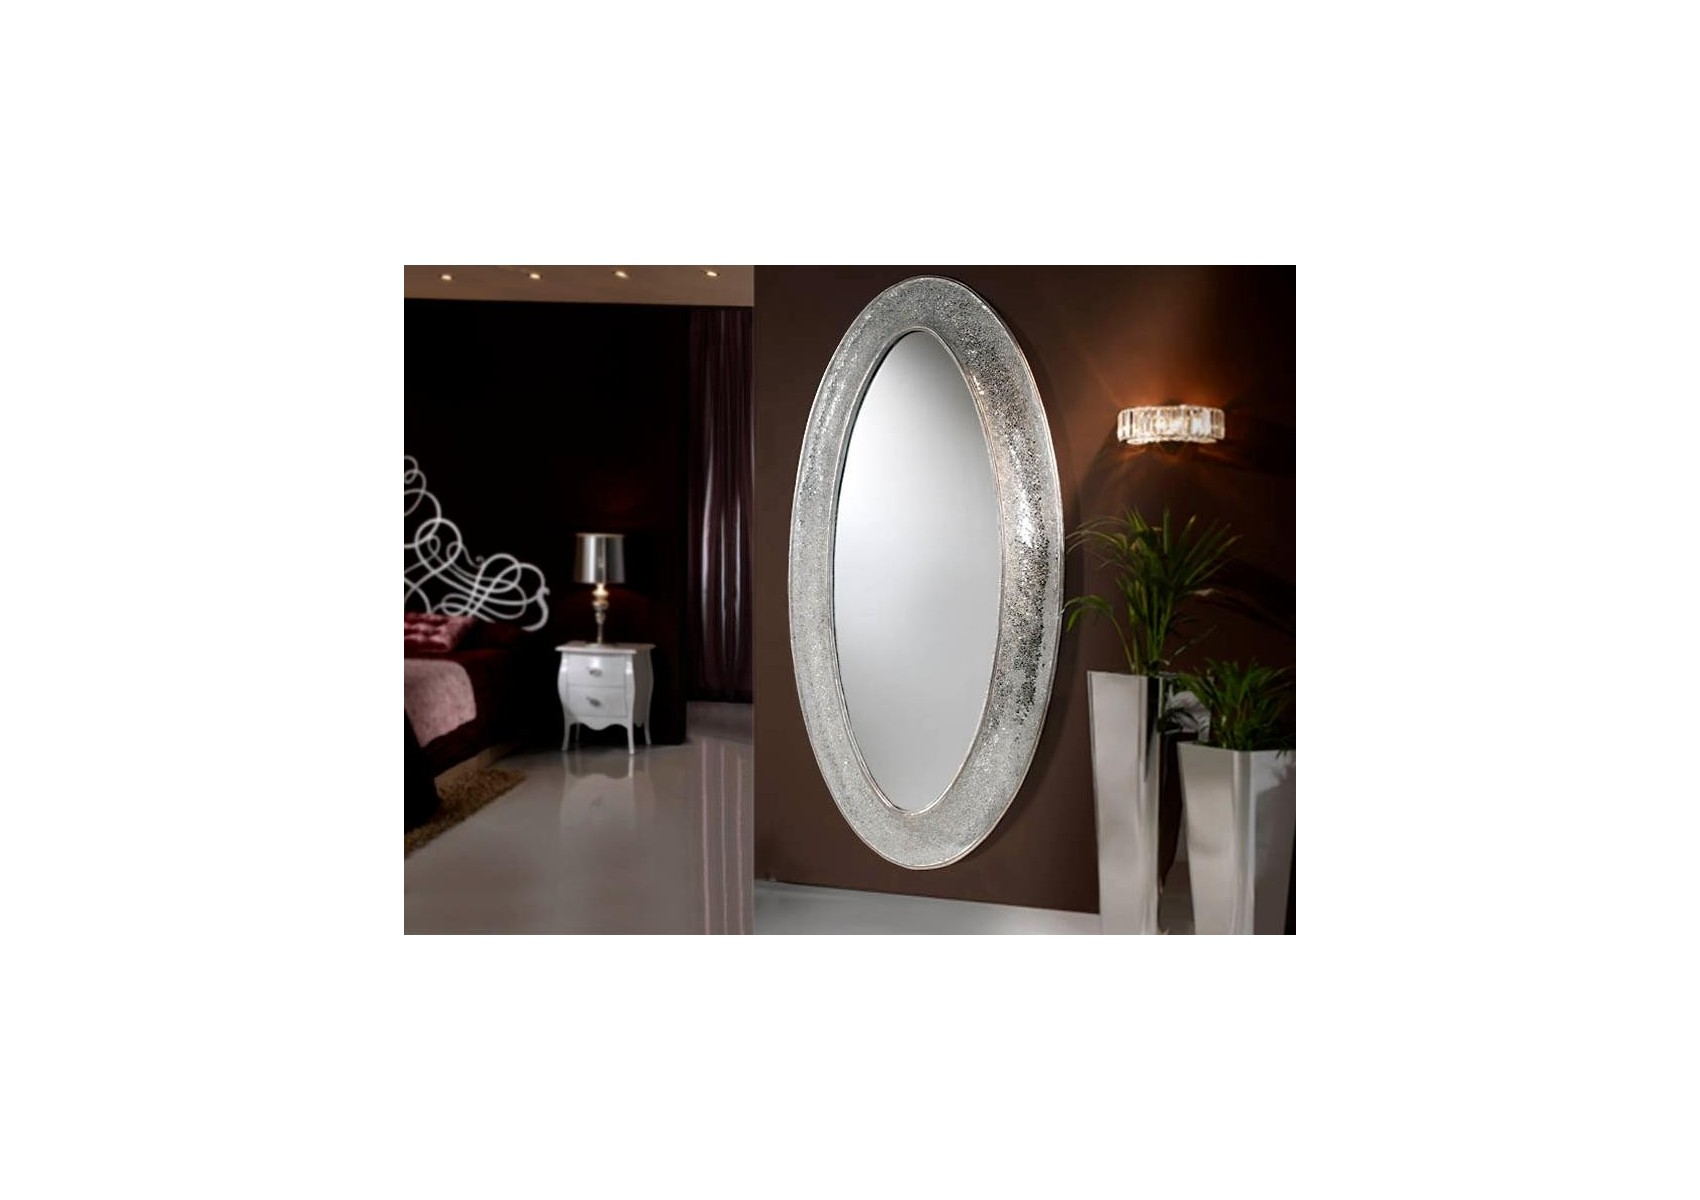 miroir oval boudoir collection gaudi design deco. Black Bedroom Furniture Sets. Home Design Ideas